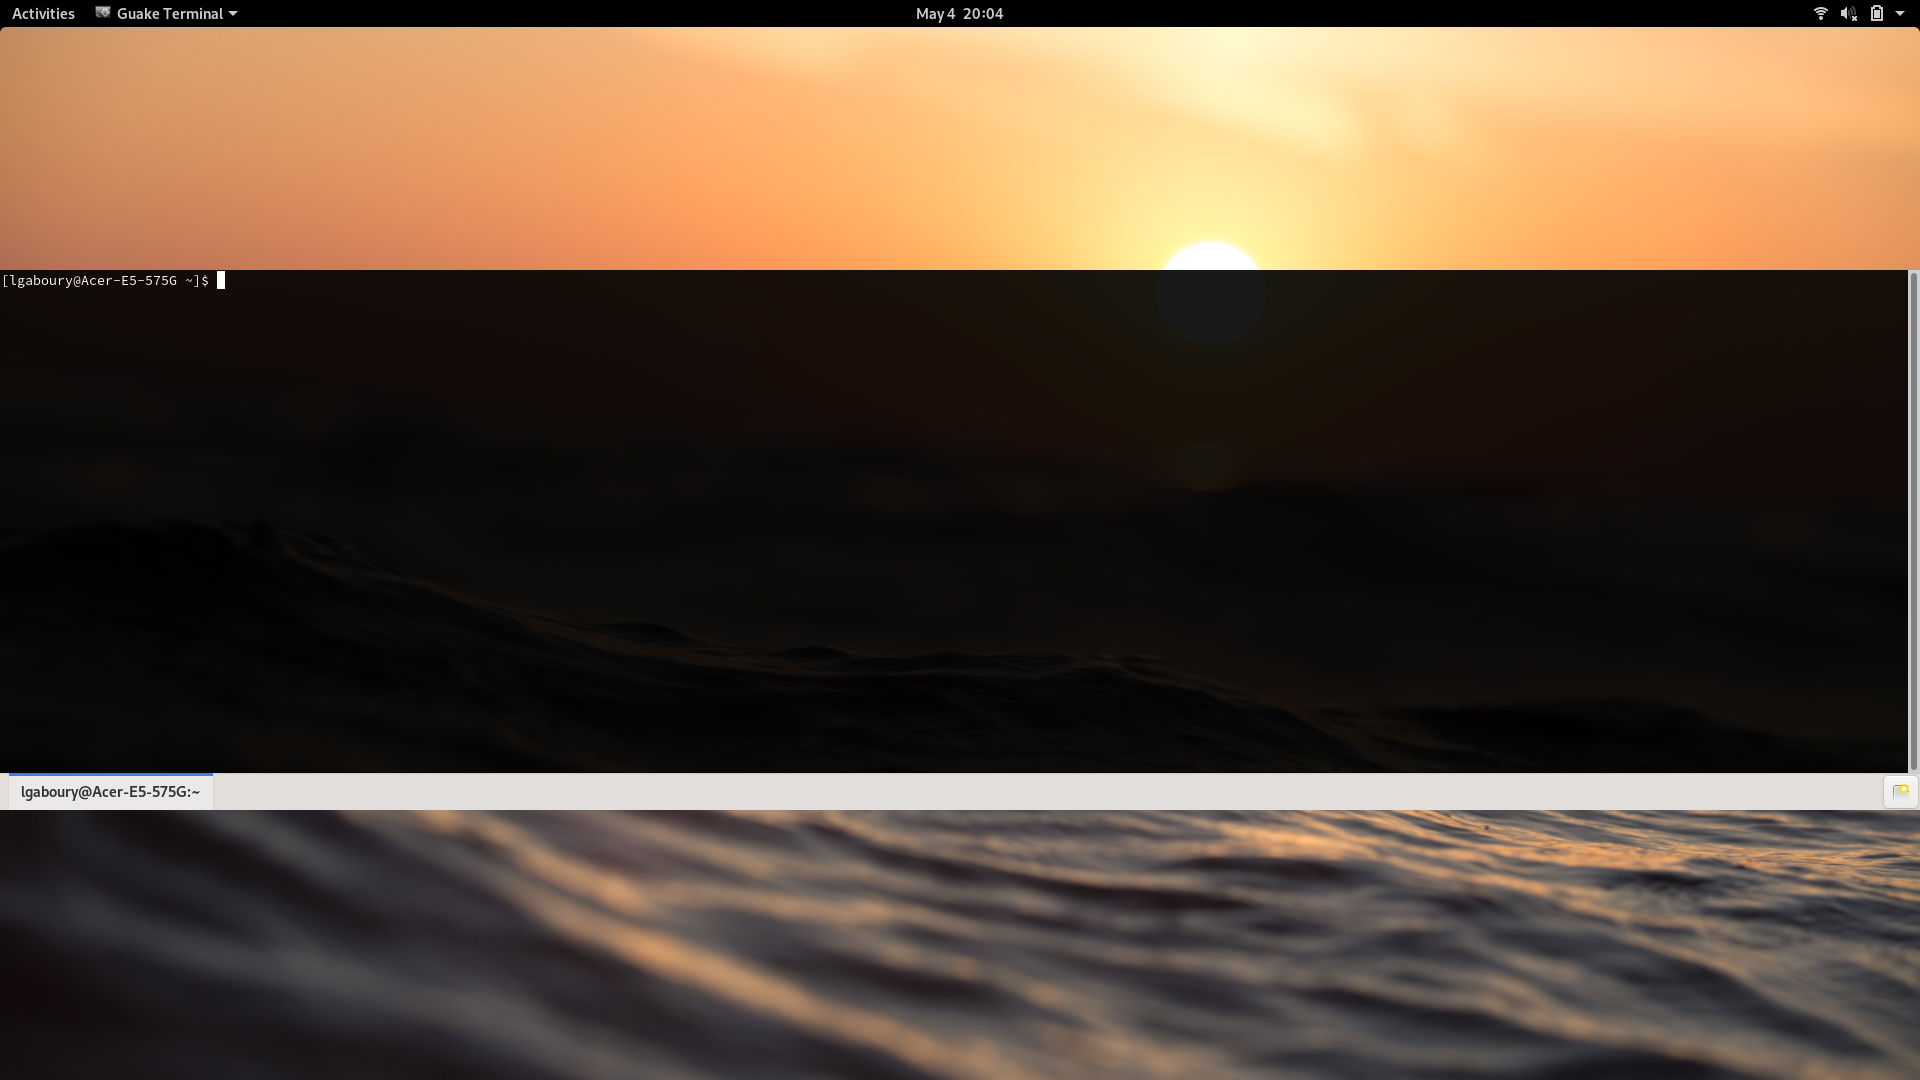 guake centered on screen under Gnome Wayland · Issue #1583